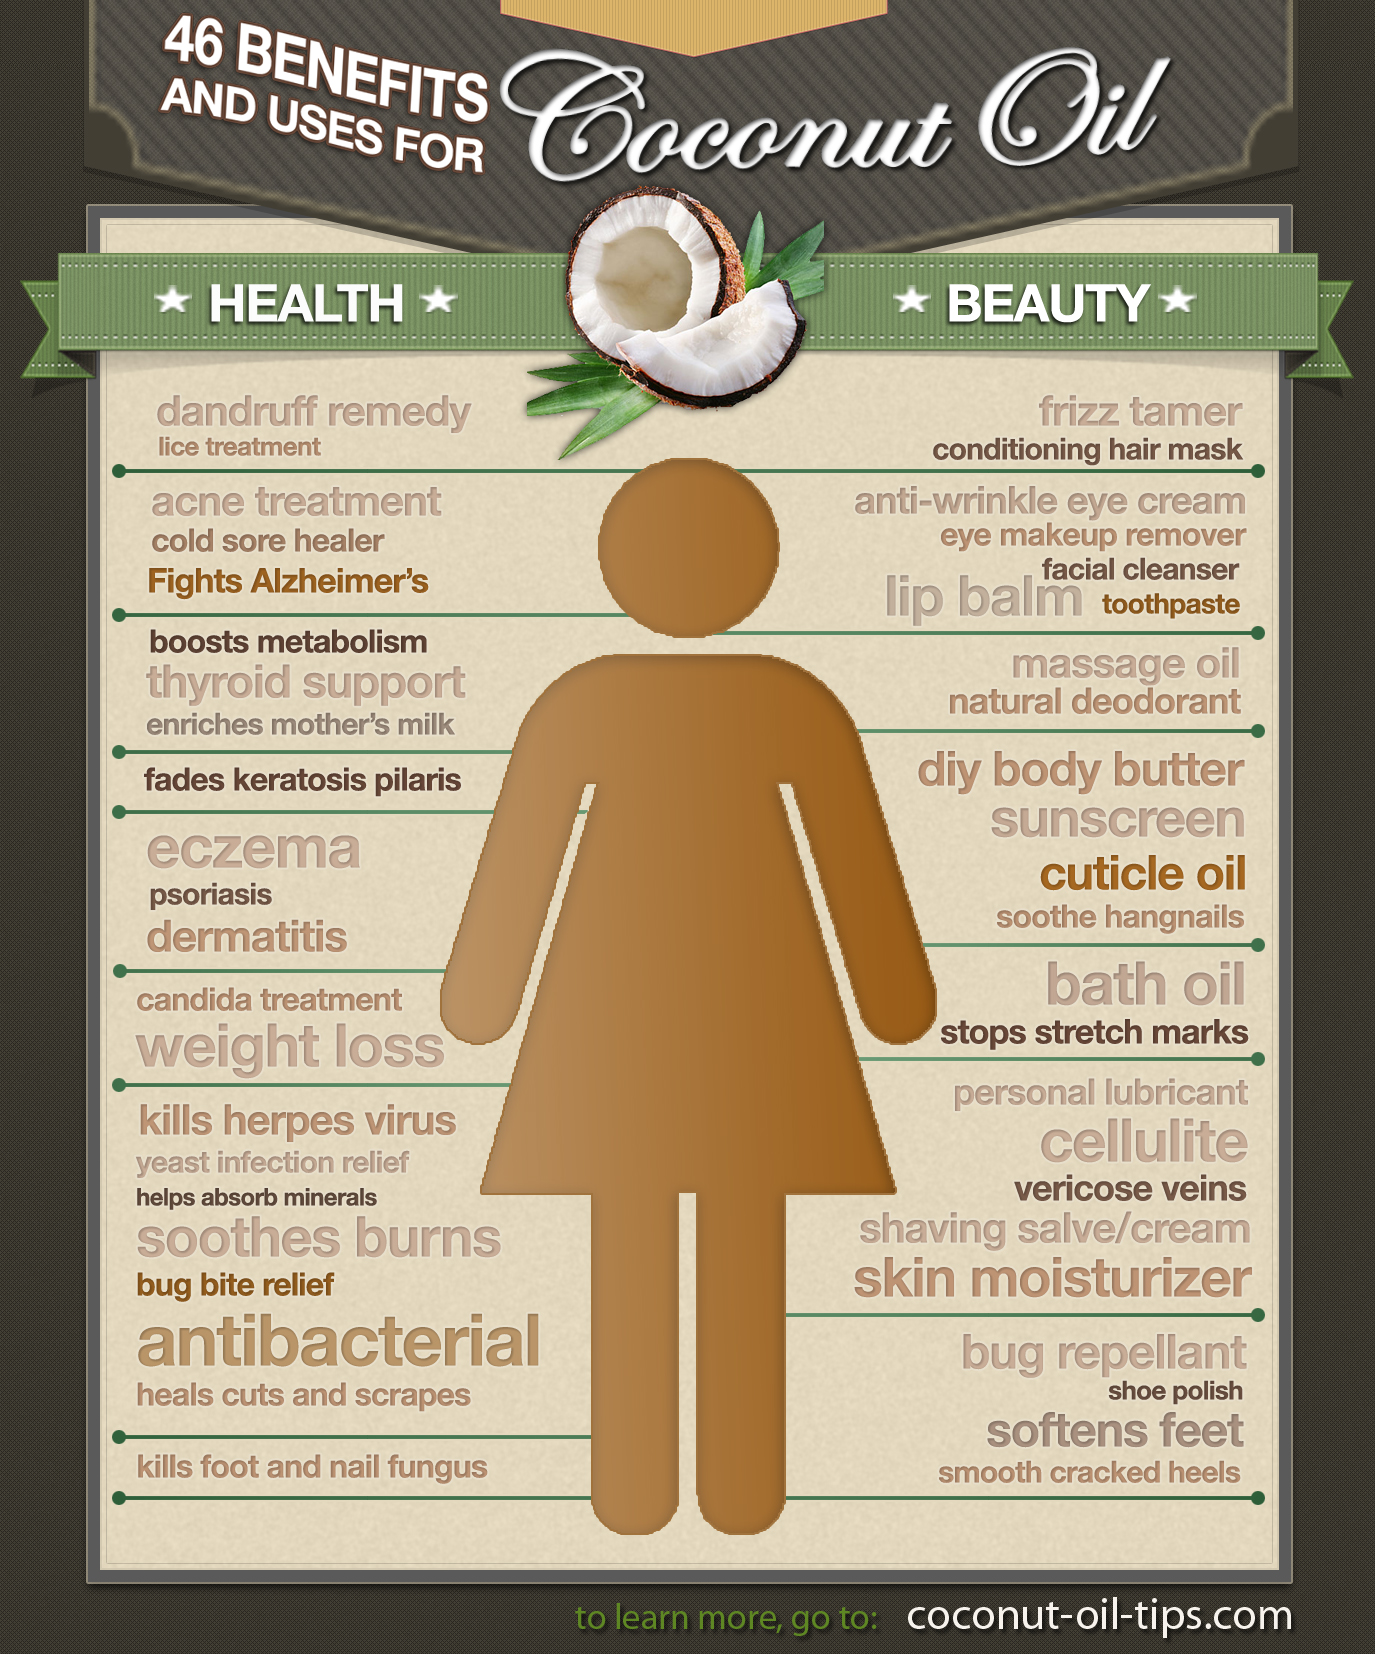 Coconut Oil Uses and Benefits Infographic